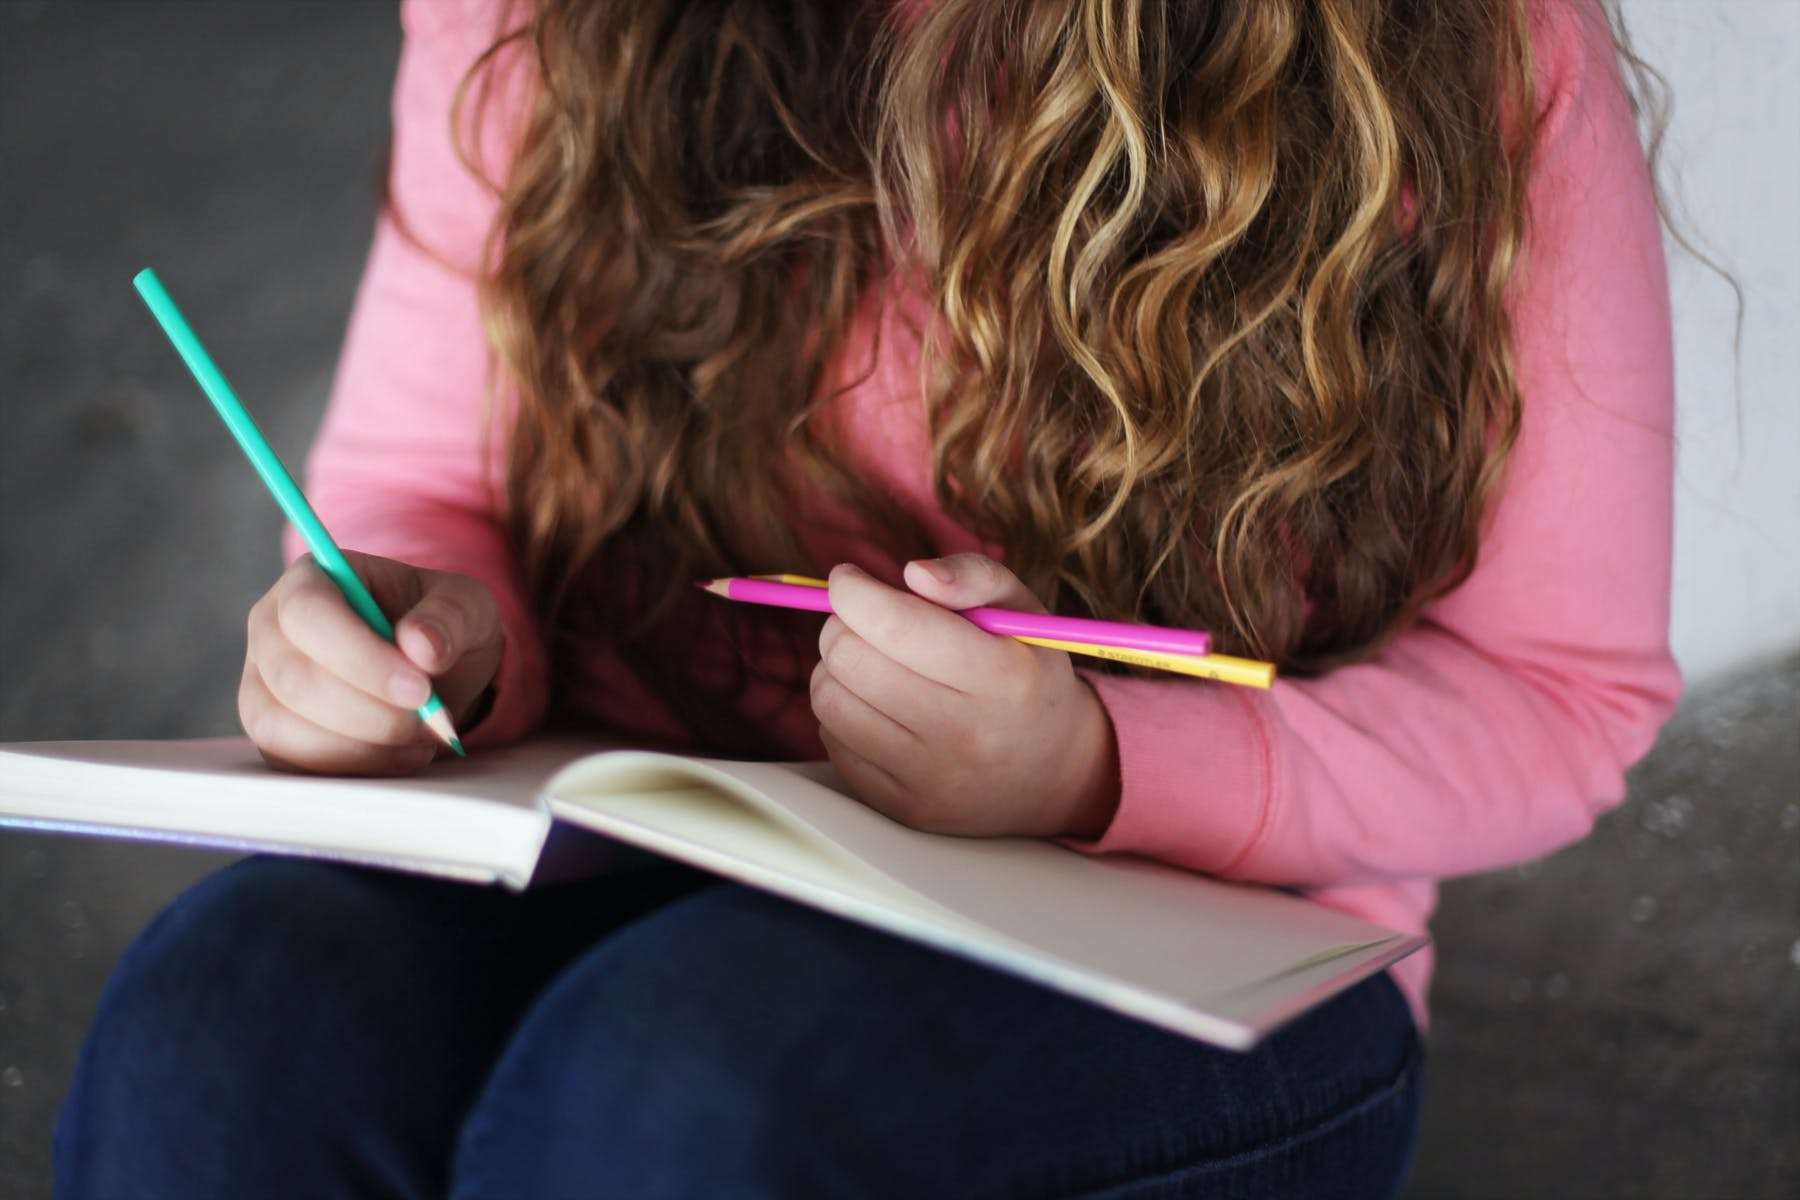 Free stock photo of notebook, girl, writing, pens